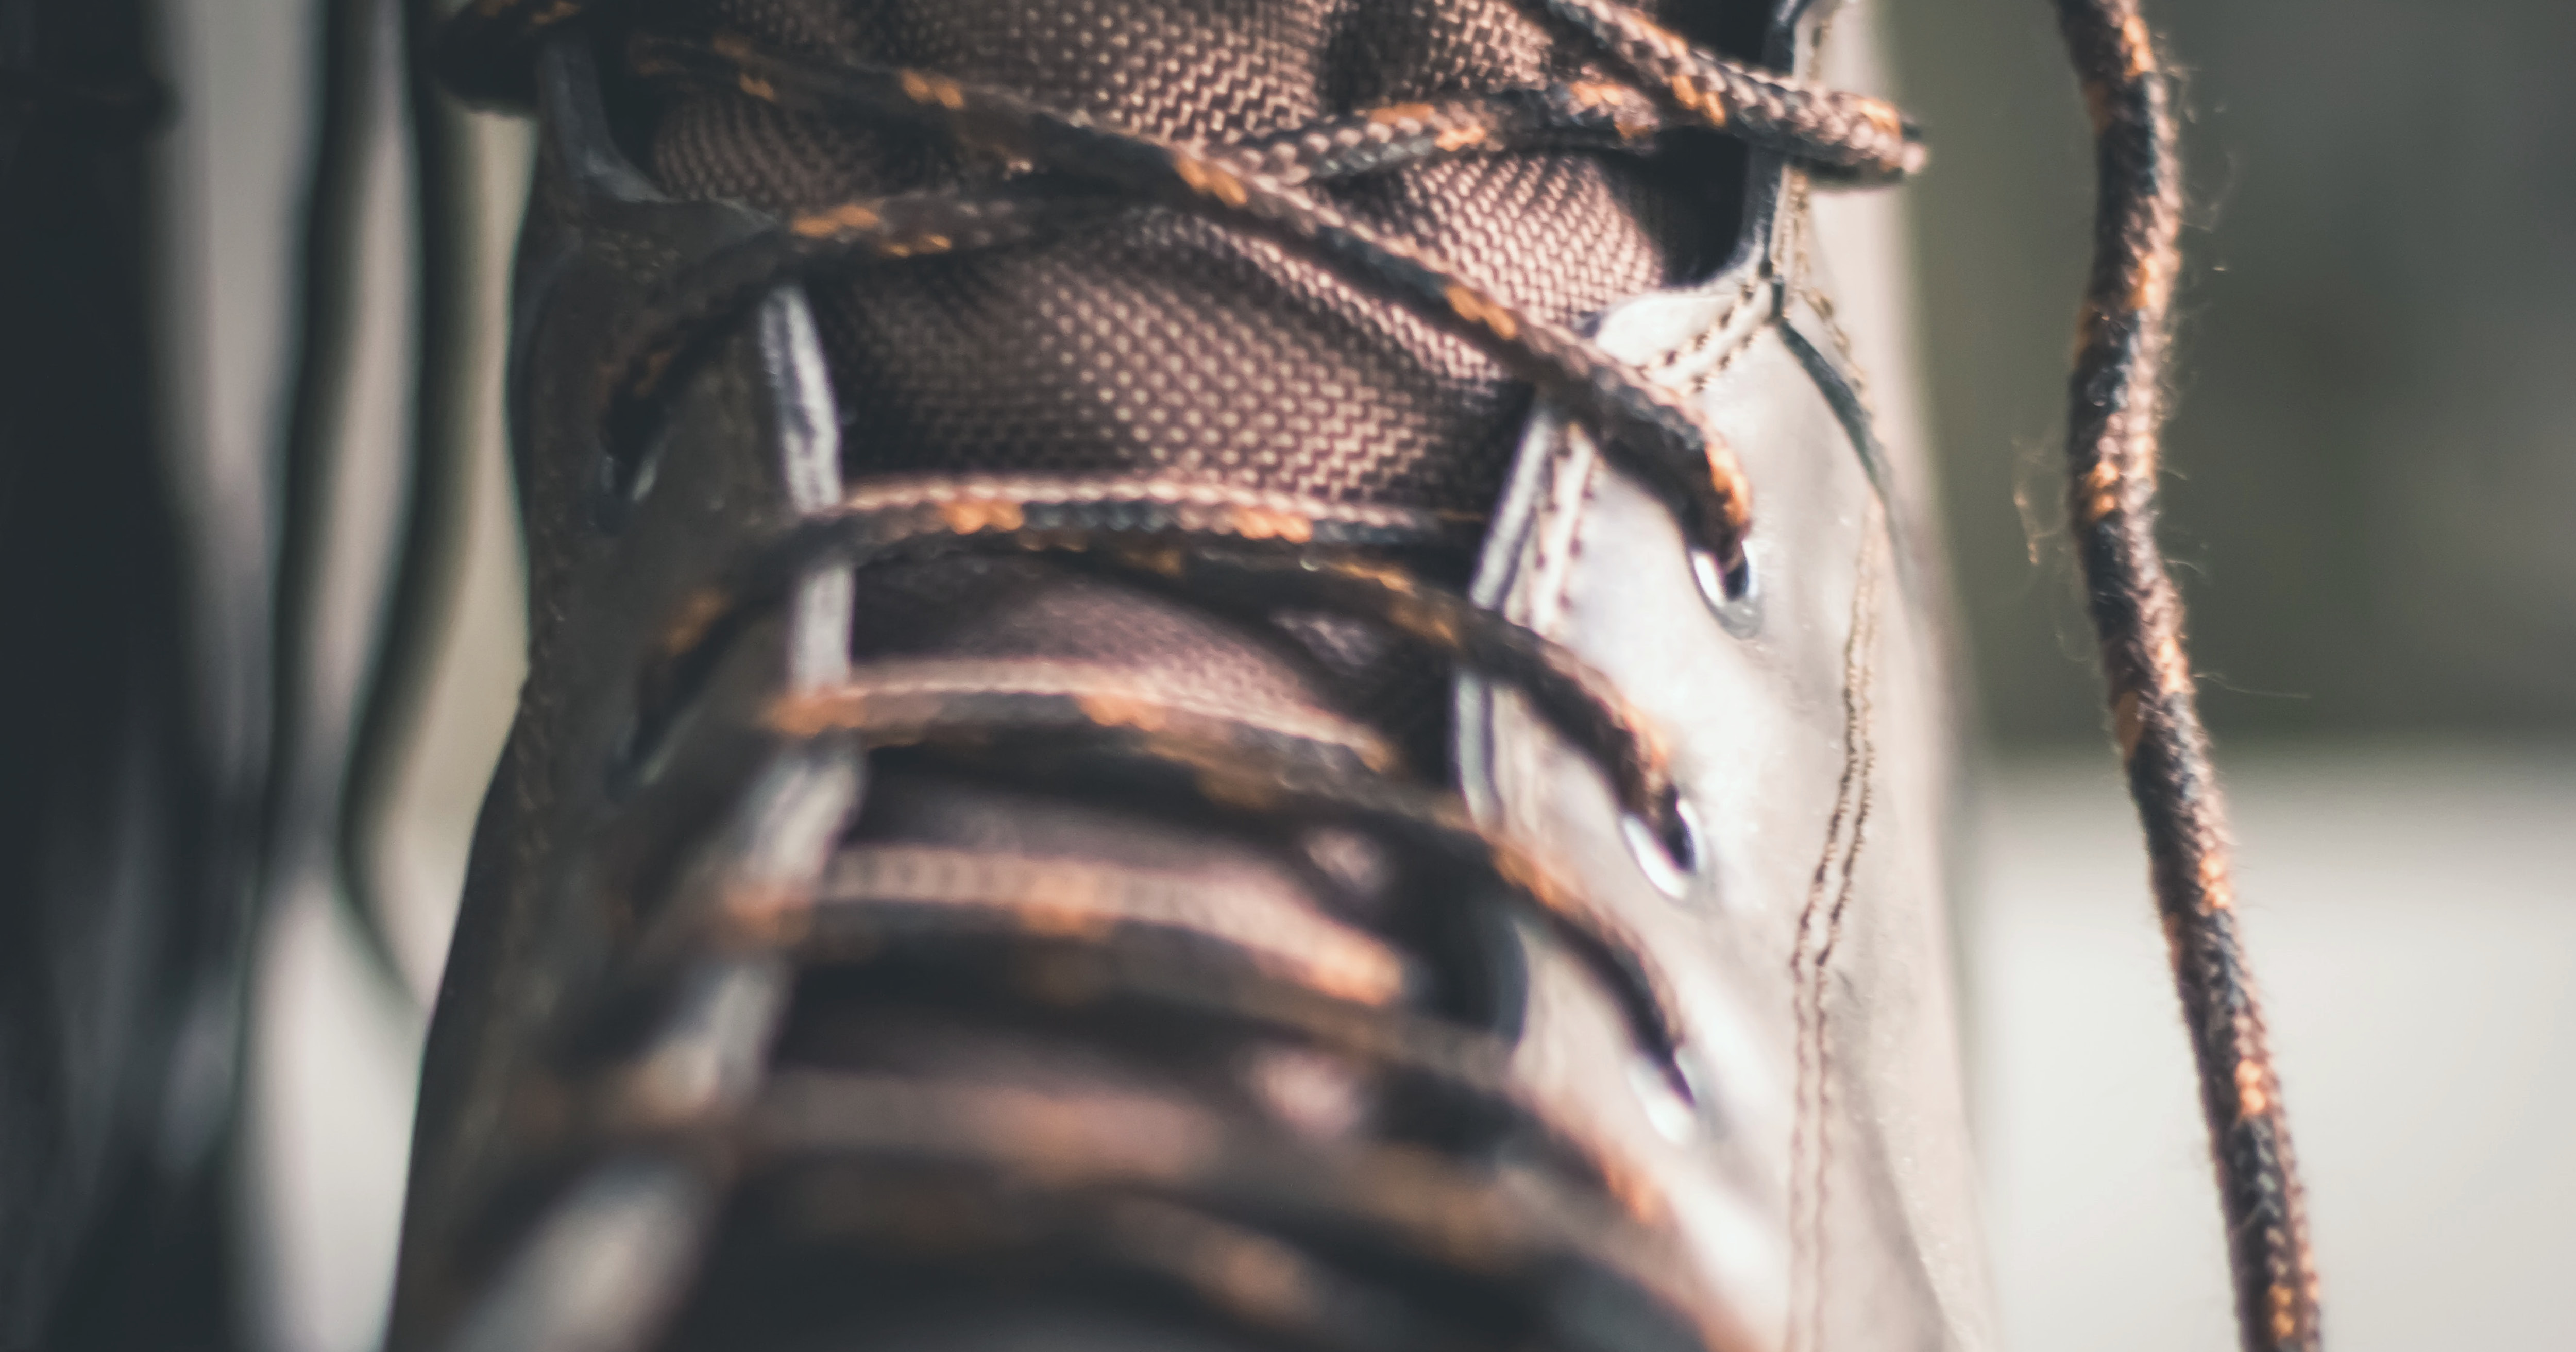 How to Care for your Leather Work Boots